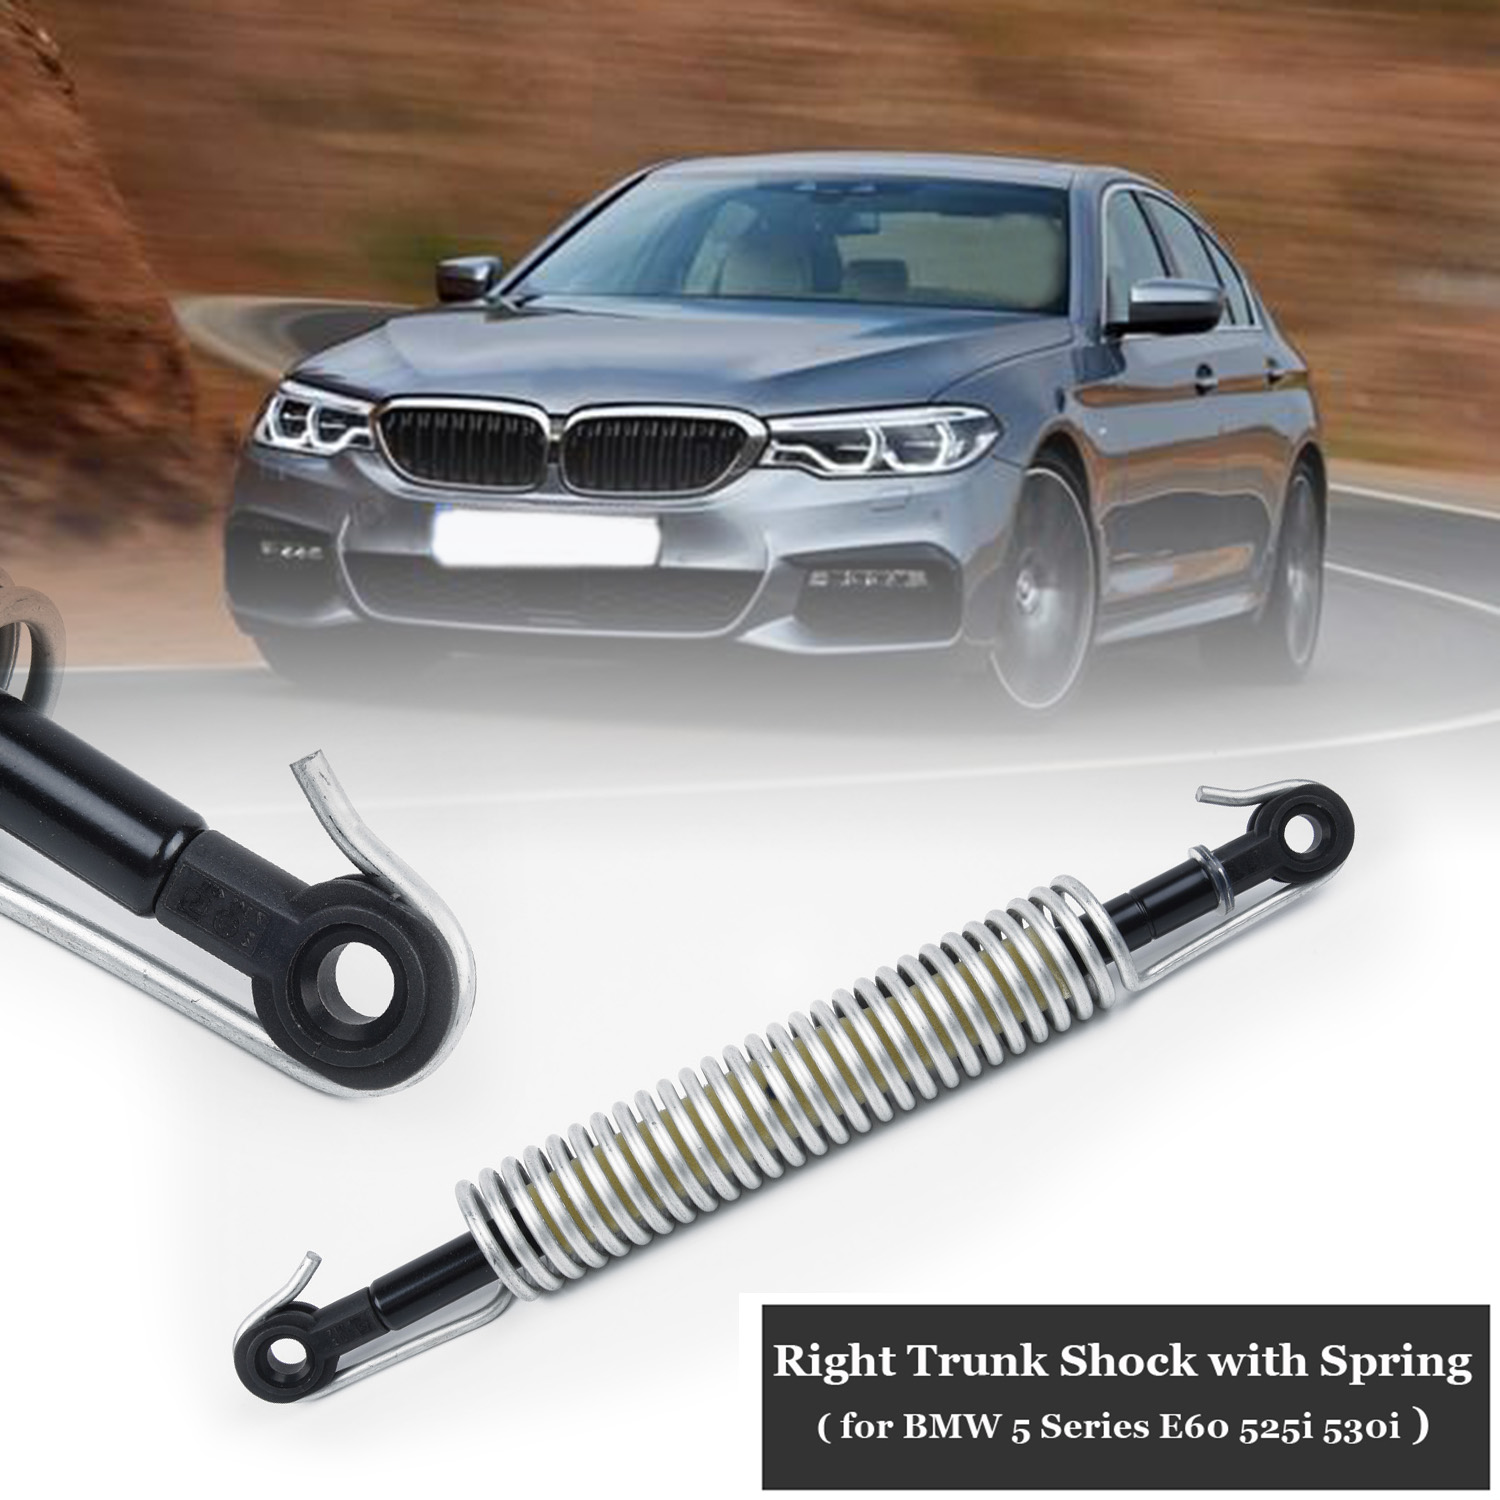 Spring W/ Shock Absorber Rear Trunk Lid Holder 51247141490 For BMW 5 SERIES E60 Right Trunk Shock With Spring For BMW Car.